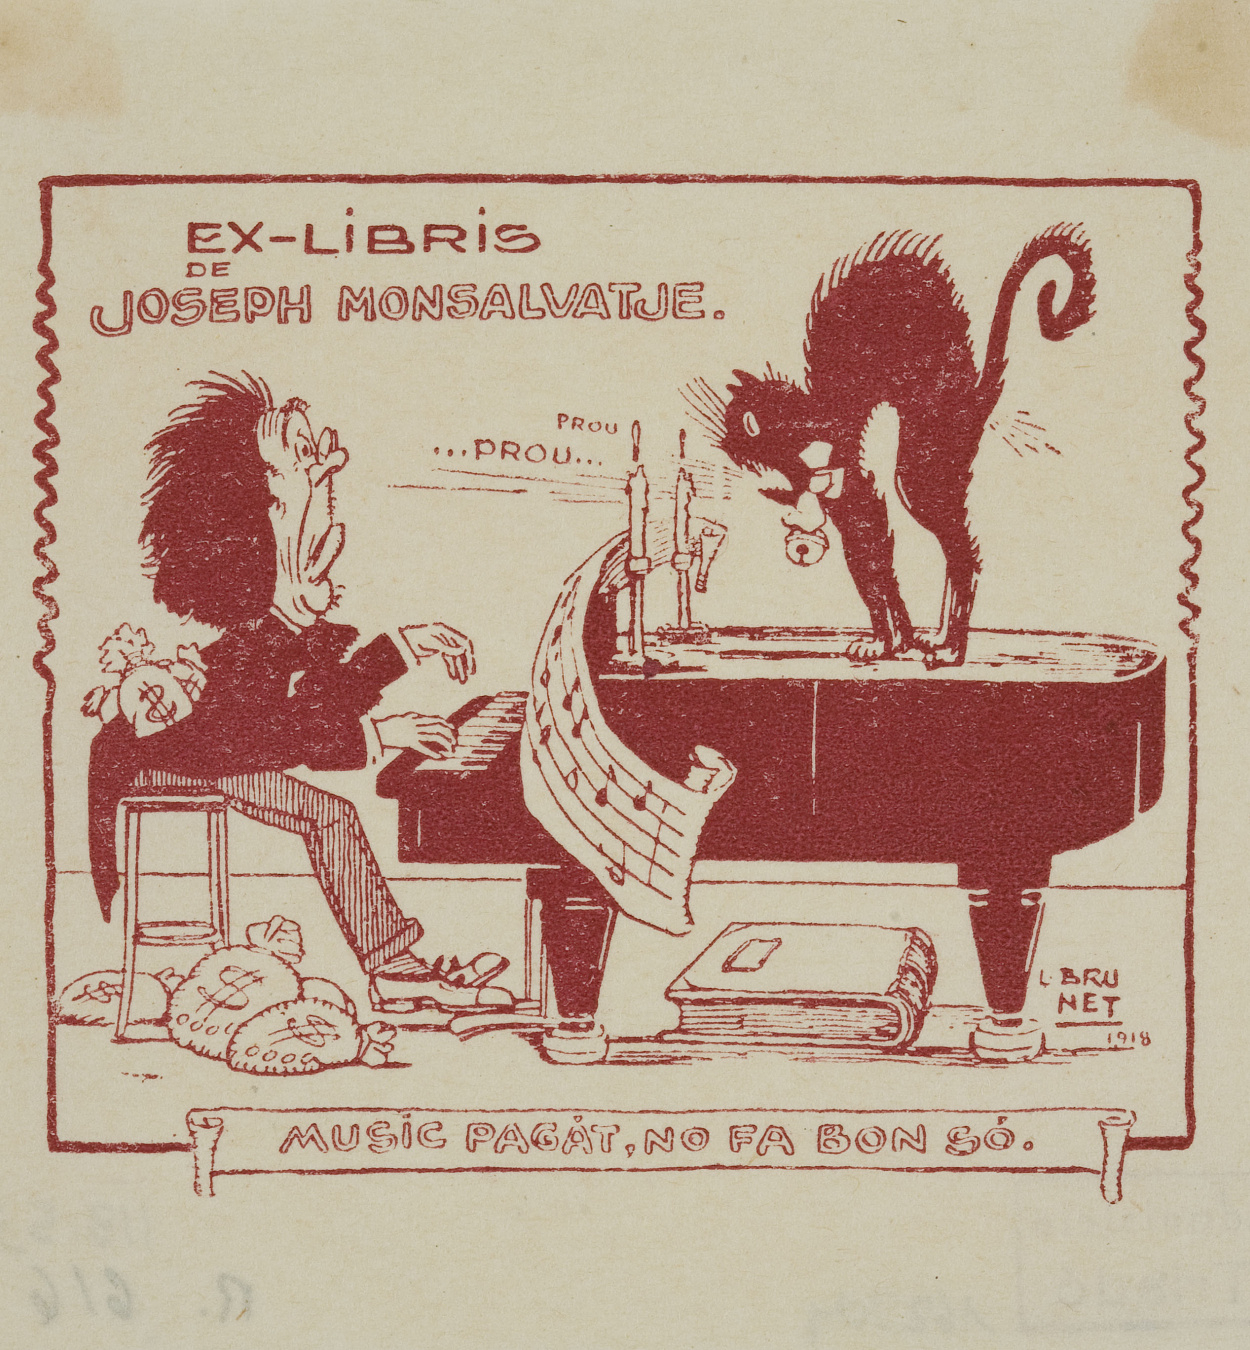 Llorenç Brunet Torroll - Book-plate of Joseph Monsalvatje - 1918